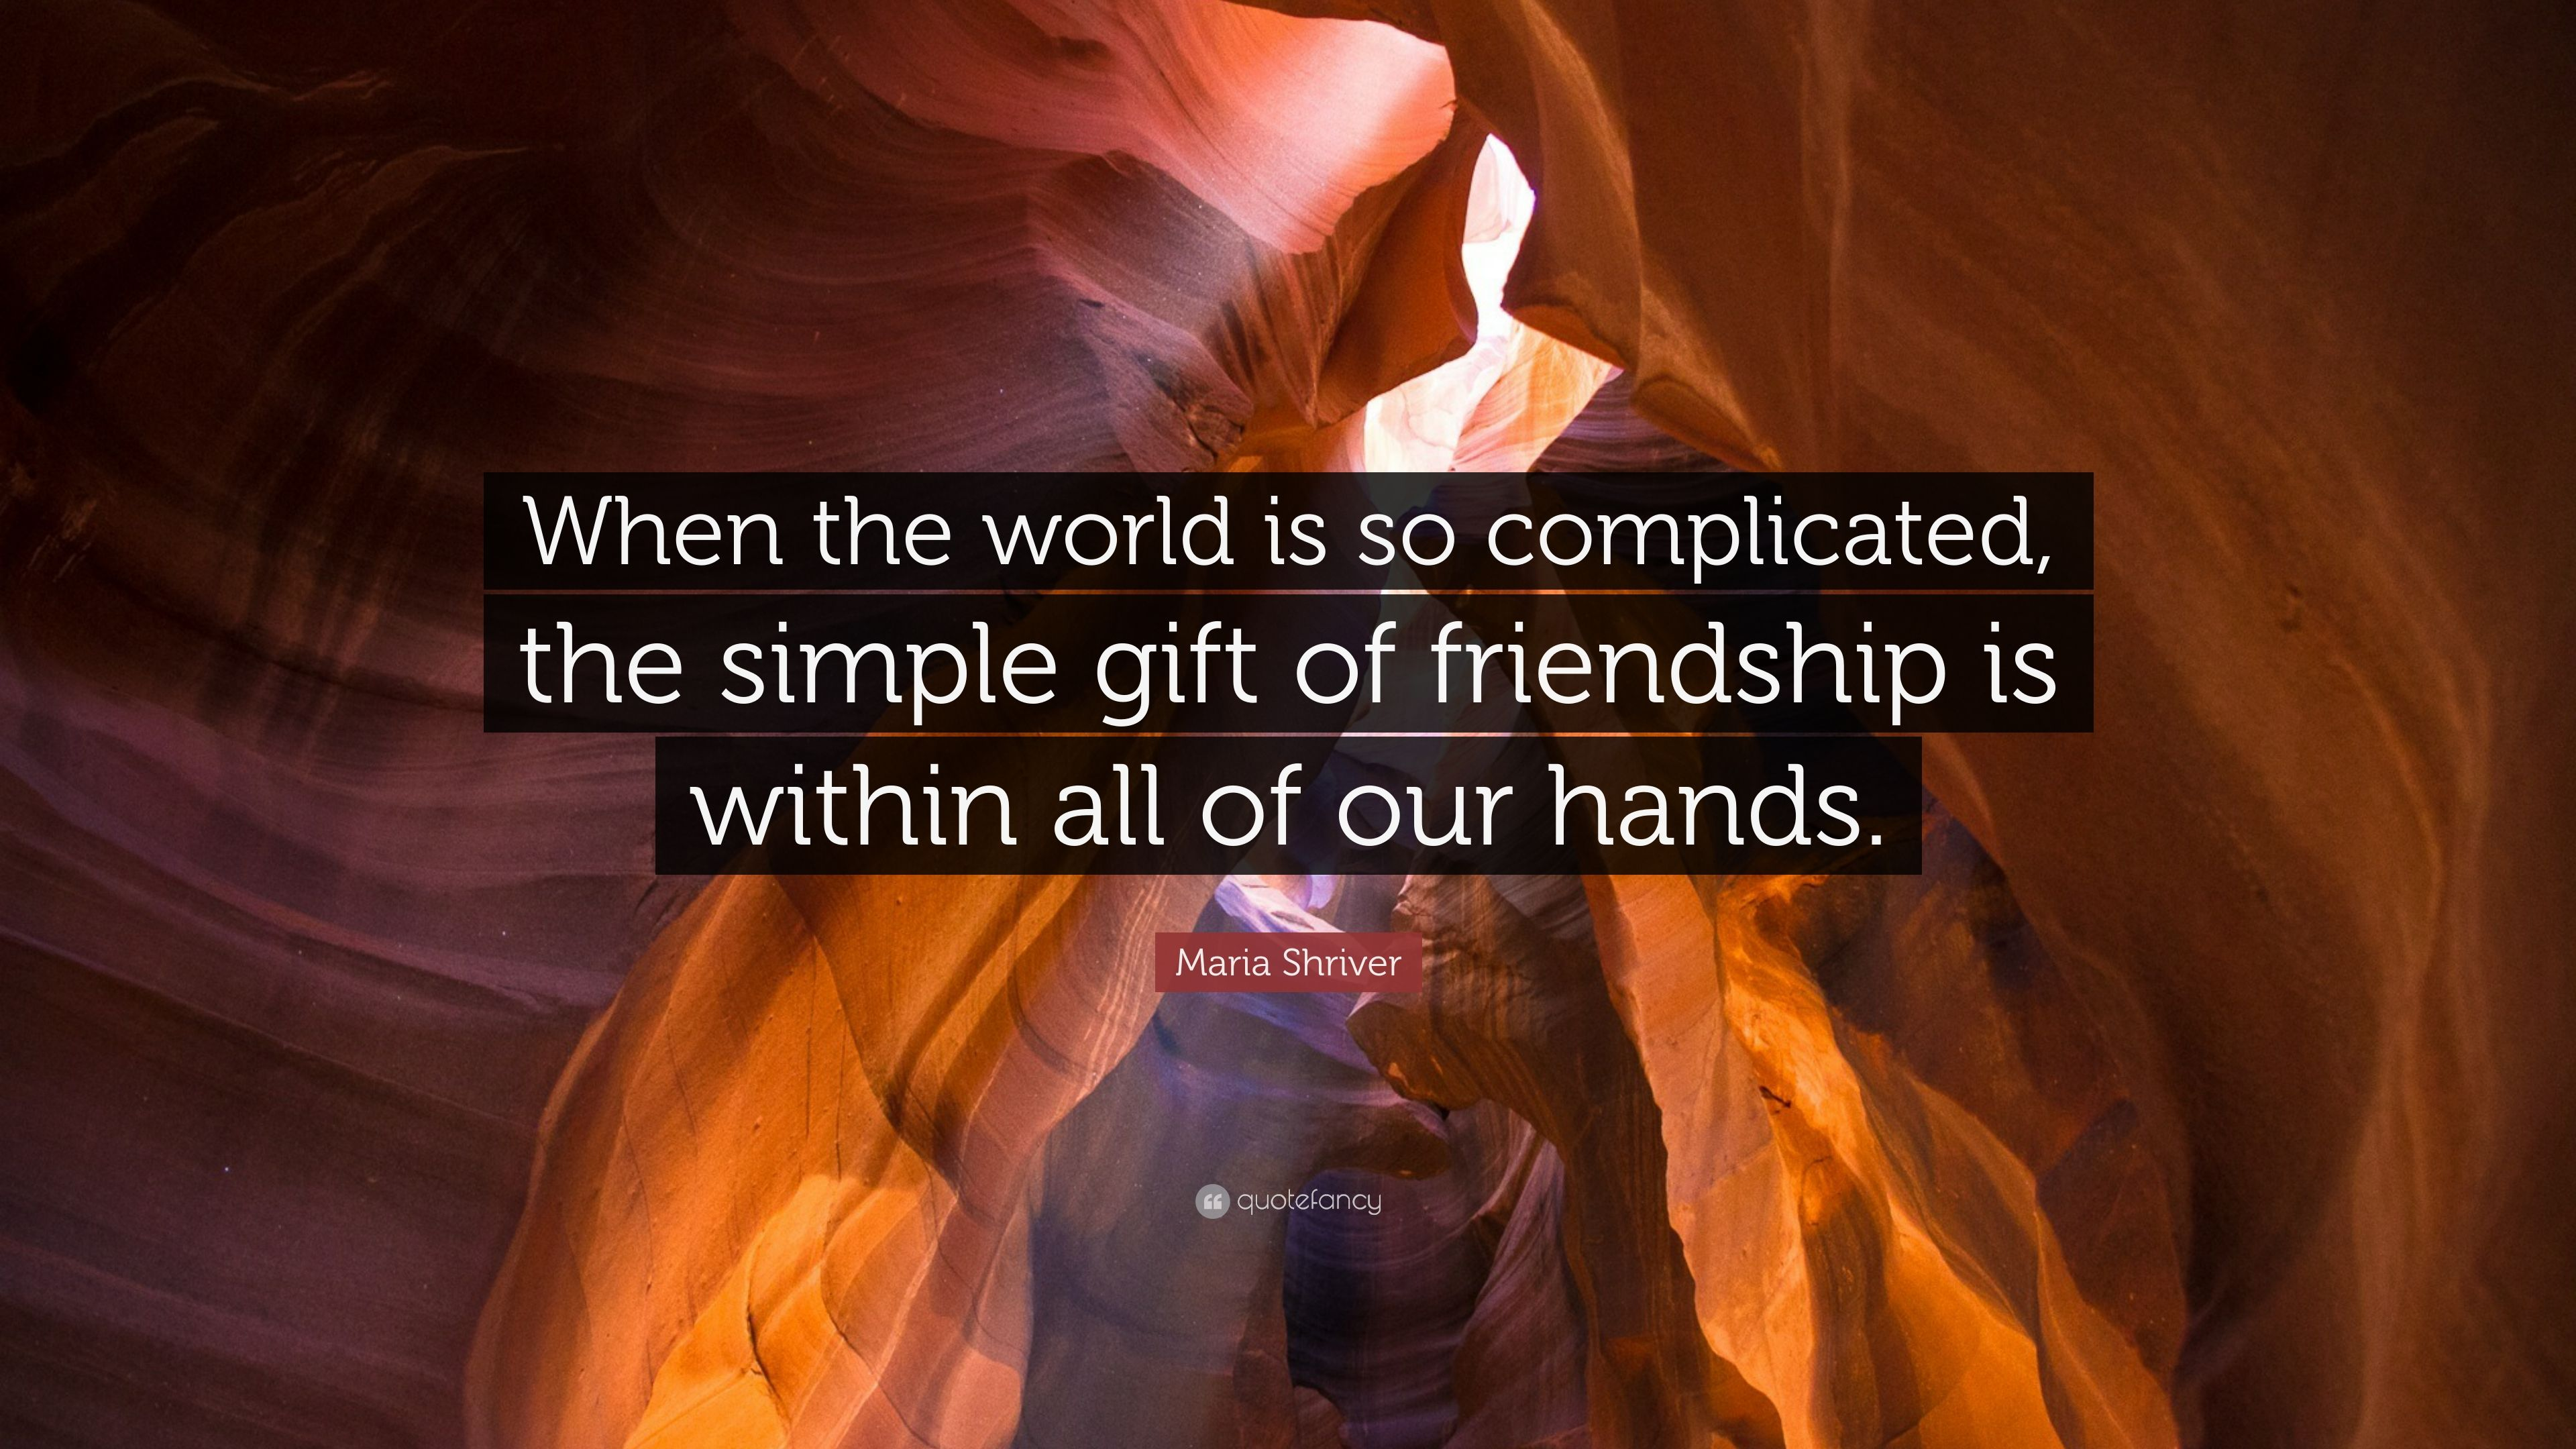 When the world is so complicated, the simple gift of friendship is within all of our hands.